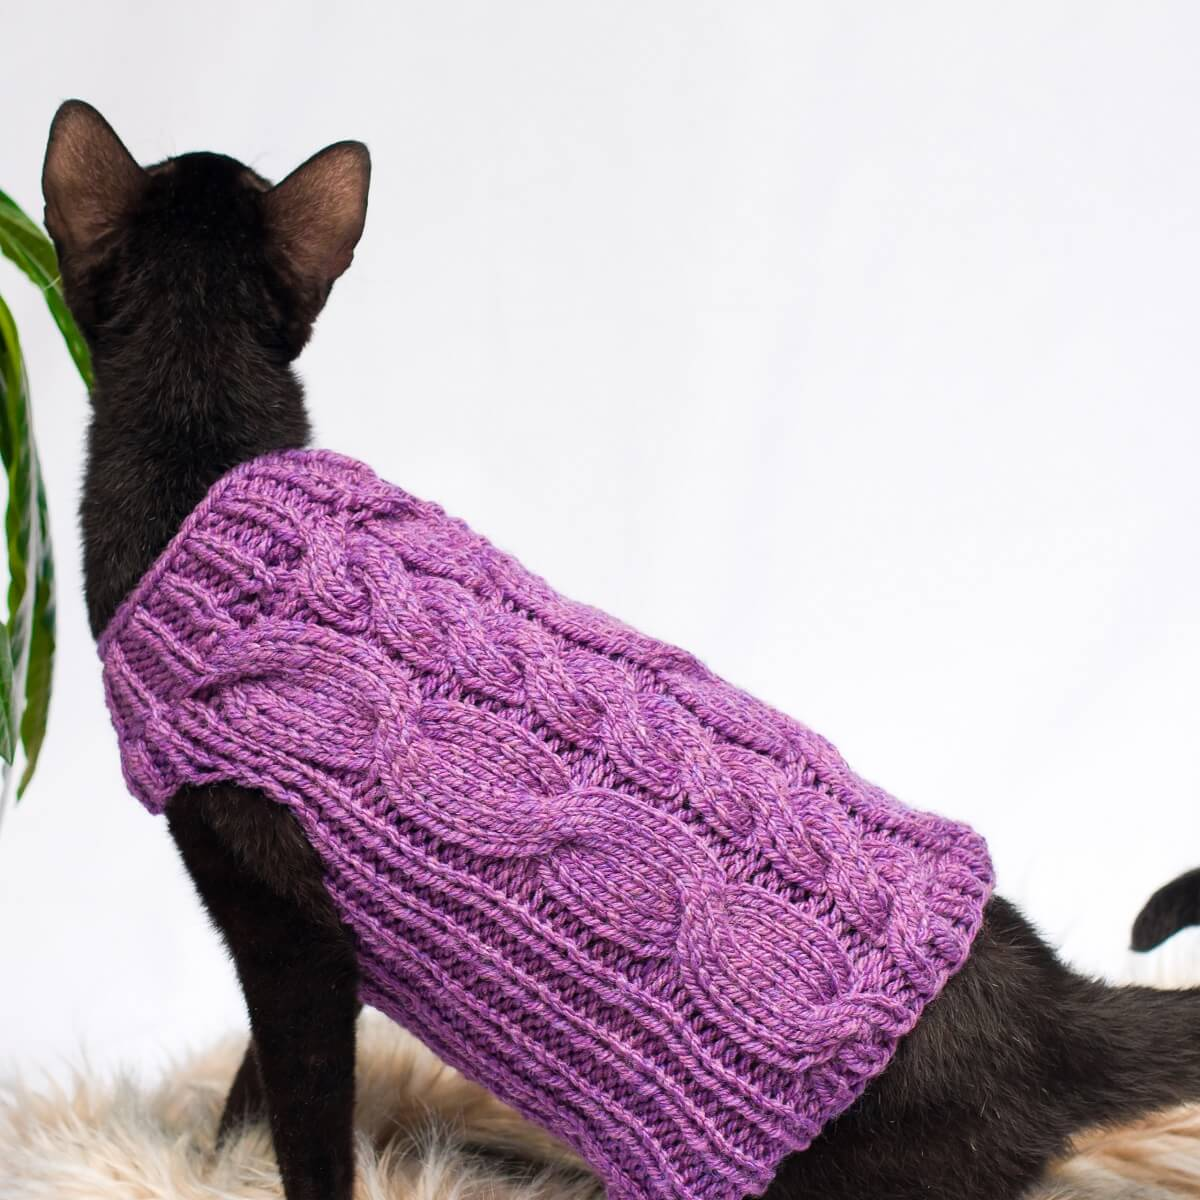 Sphynx cat sweater. Sphynx cat cardigan. Cat wear.